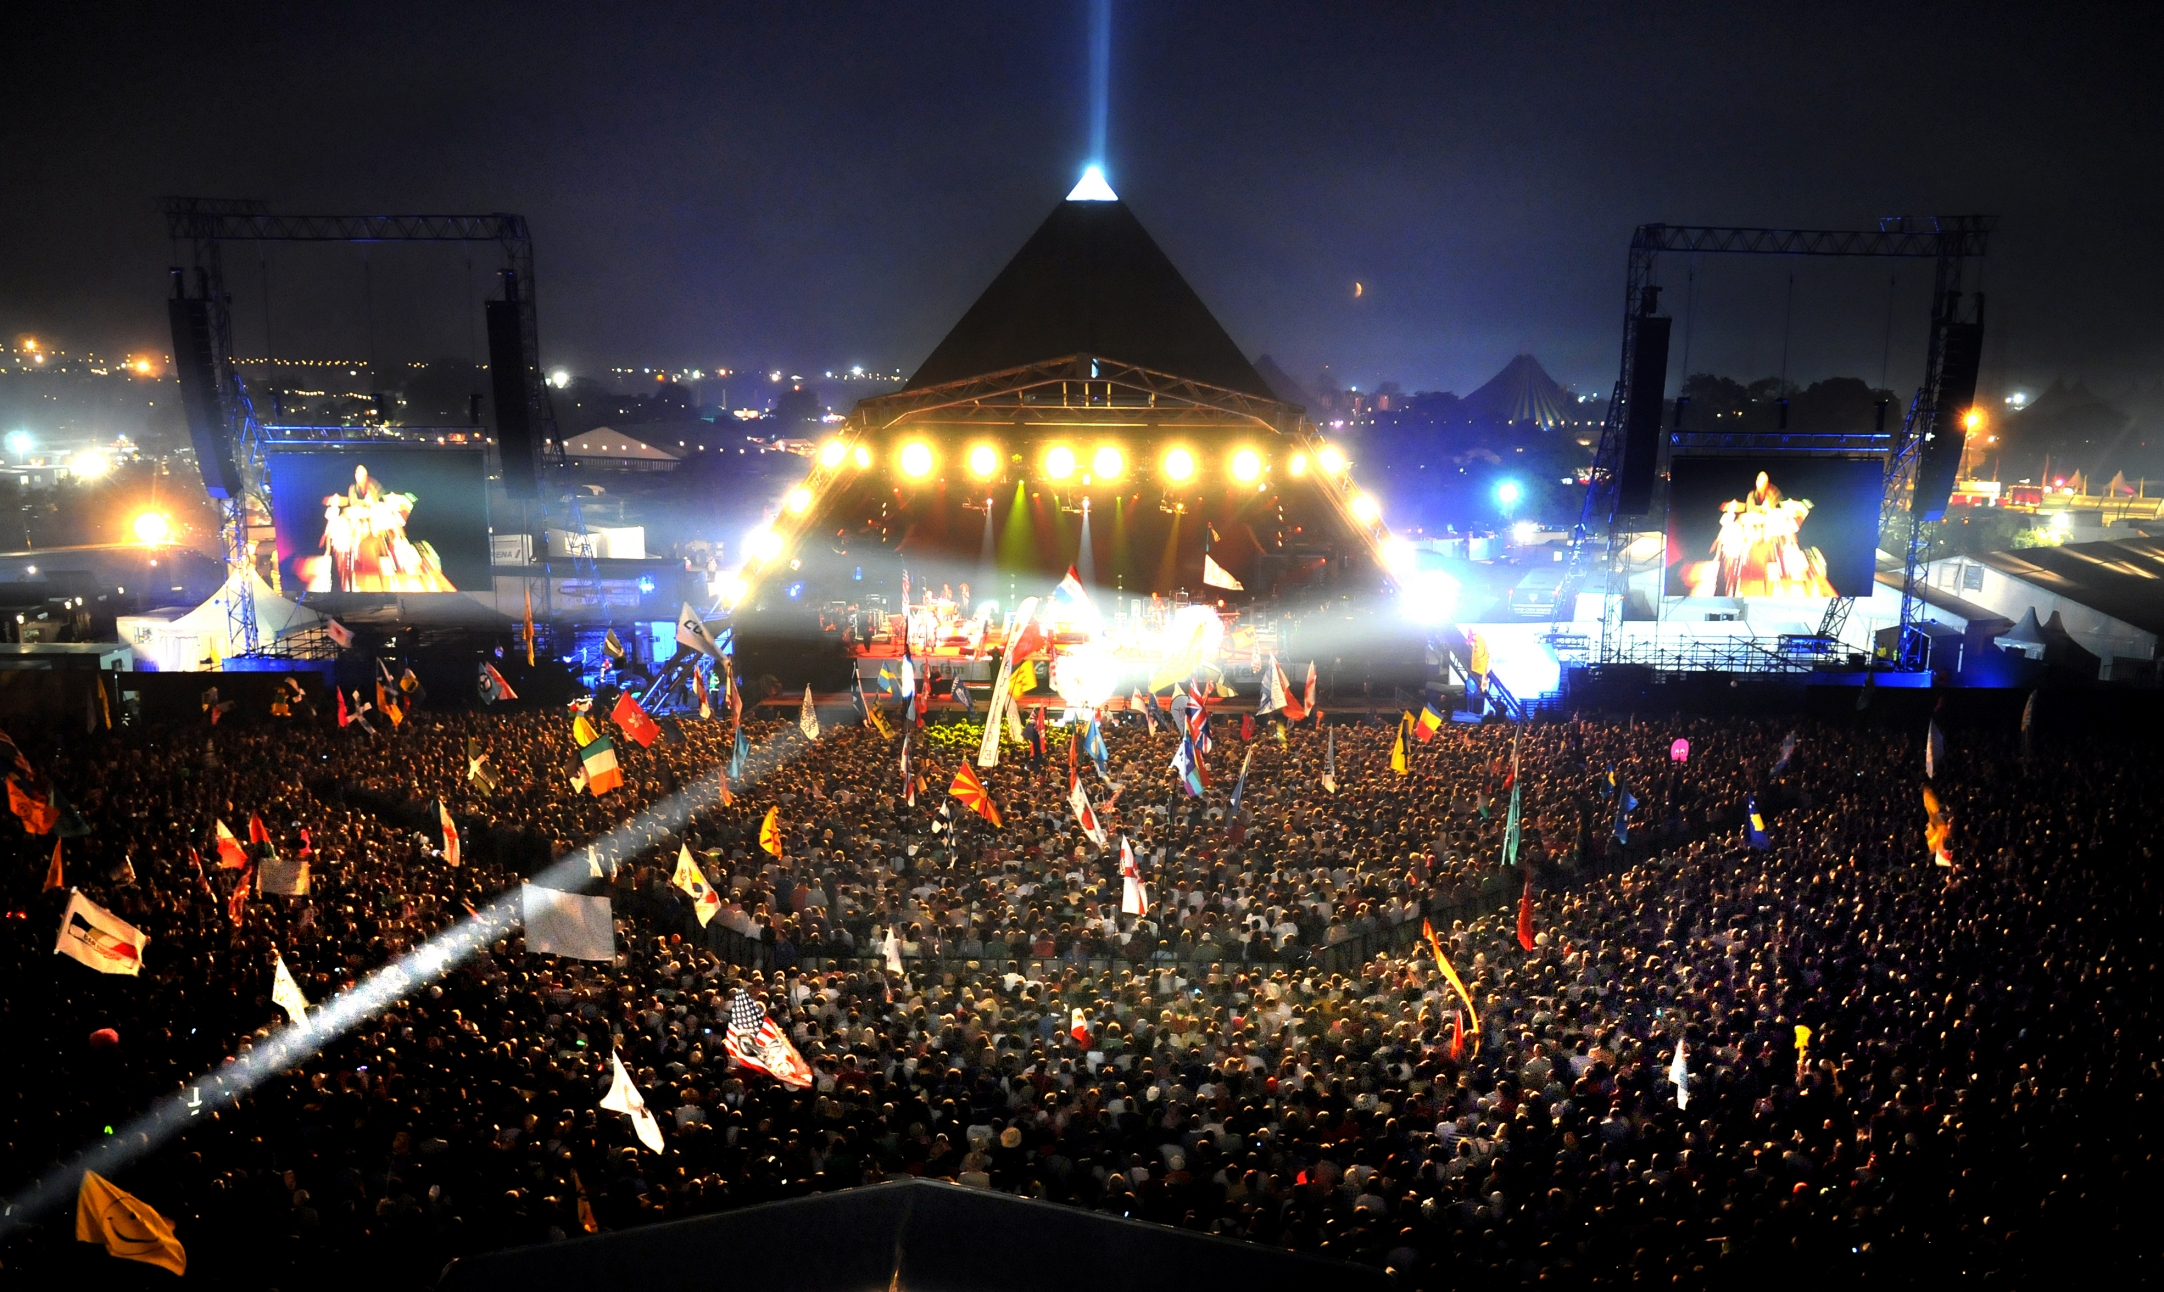 glastonbury2010.jpg